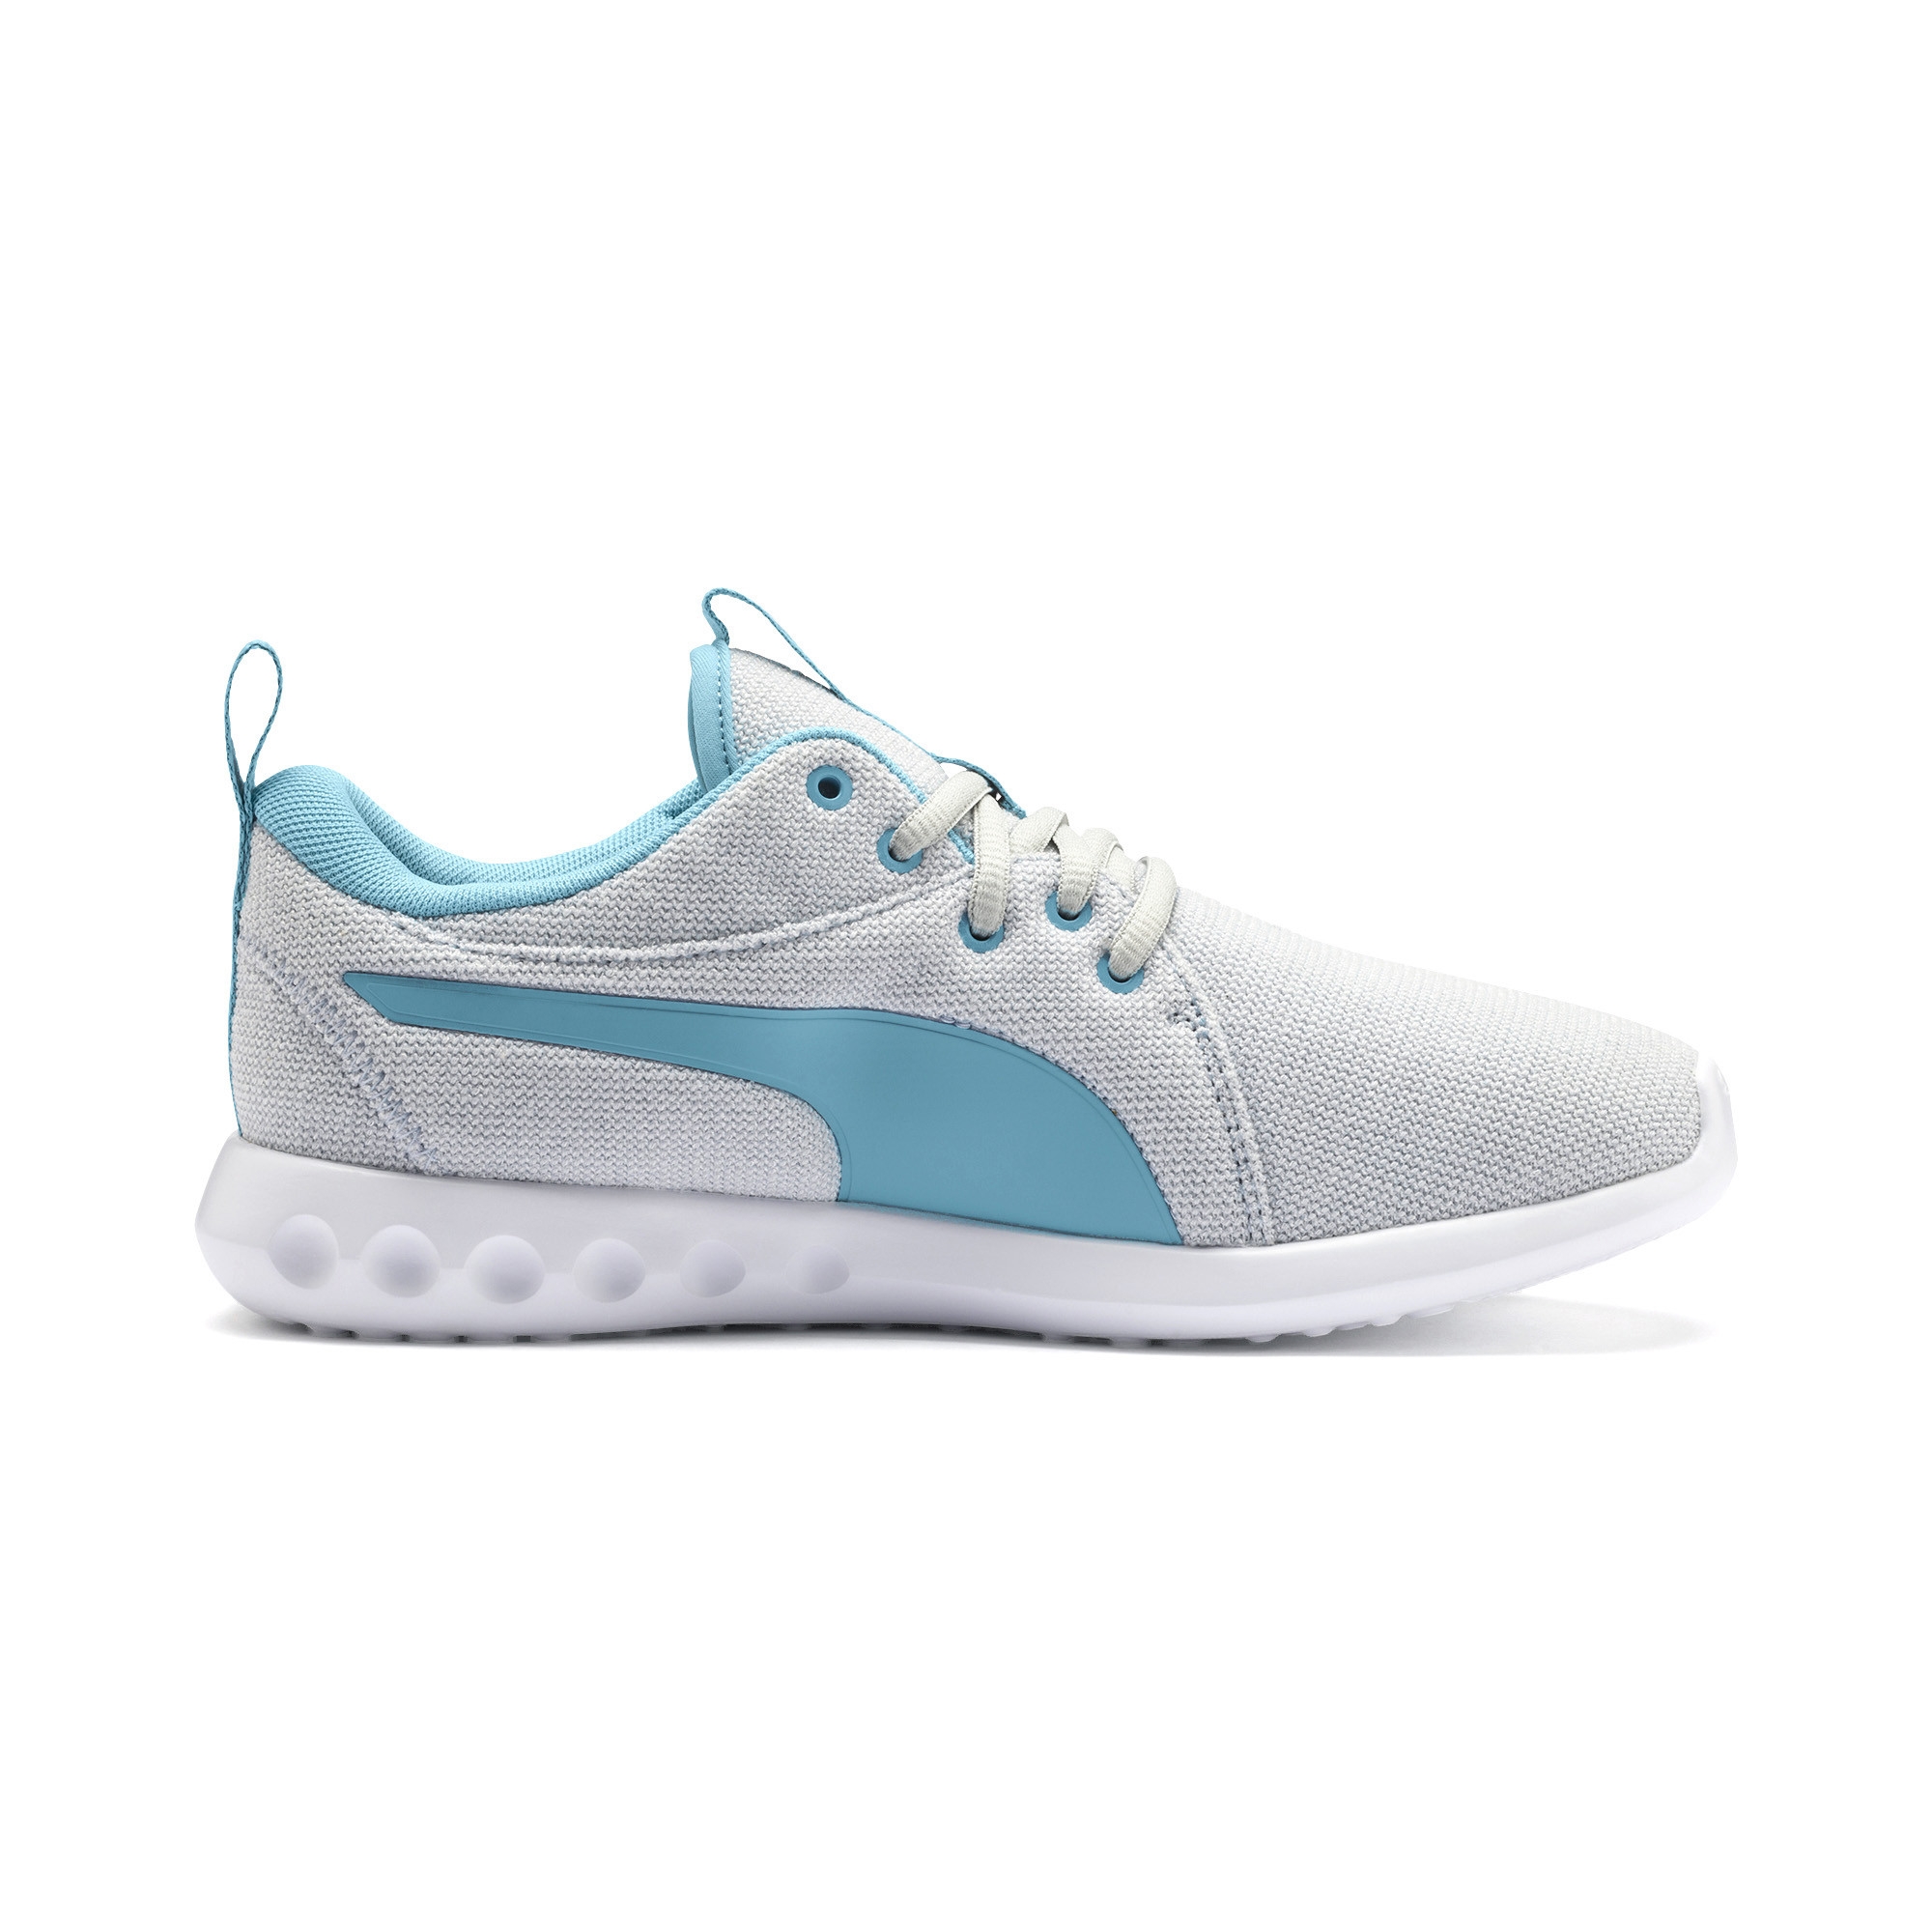 PUMA-Women-039-s-Carson-2-Knit-Running-Shoes thumbnail 38